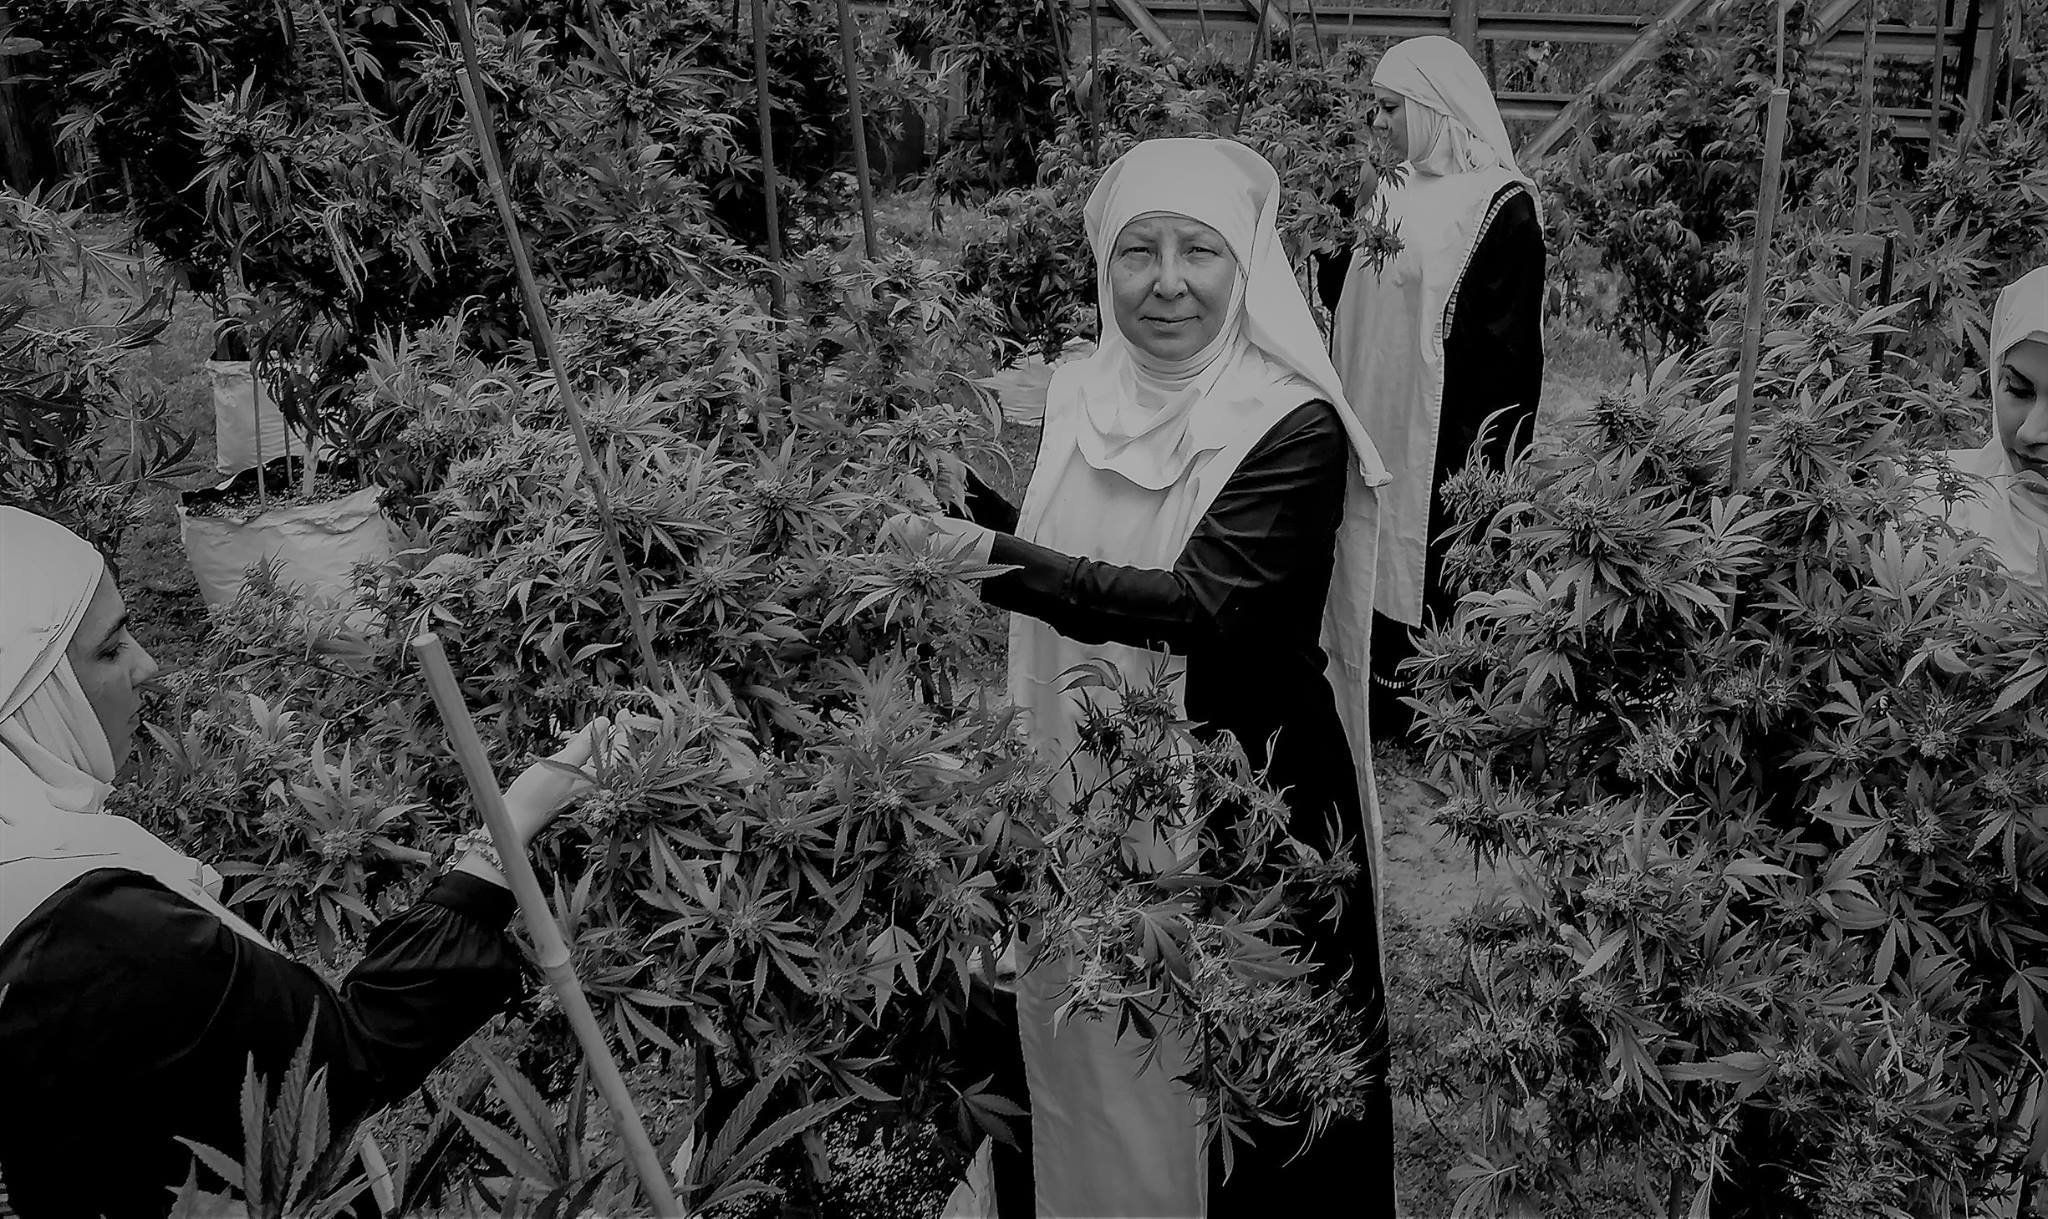 NUNS BELIEVING IN THE HEALING POWER OF CBD OIL, SELL CBD PRODUCTS